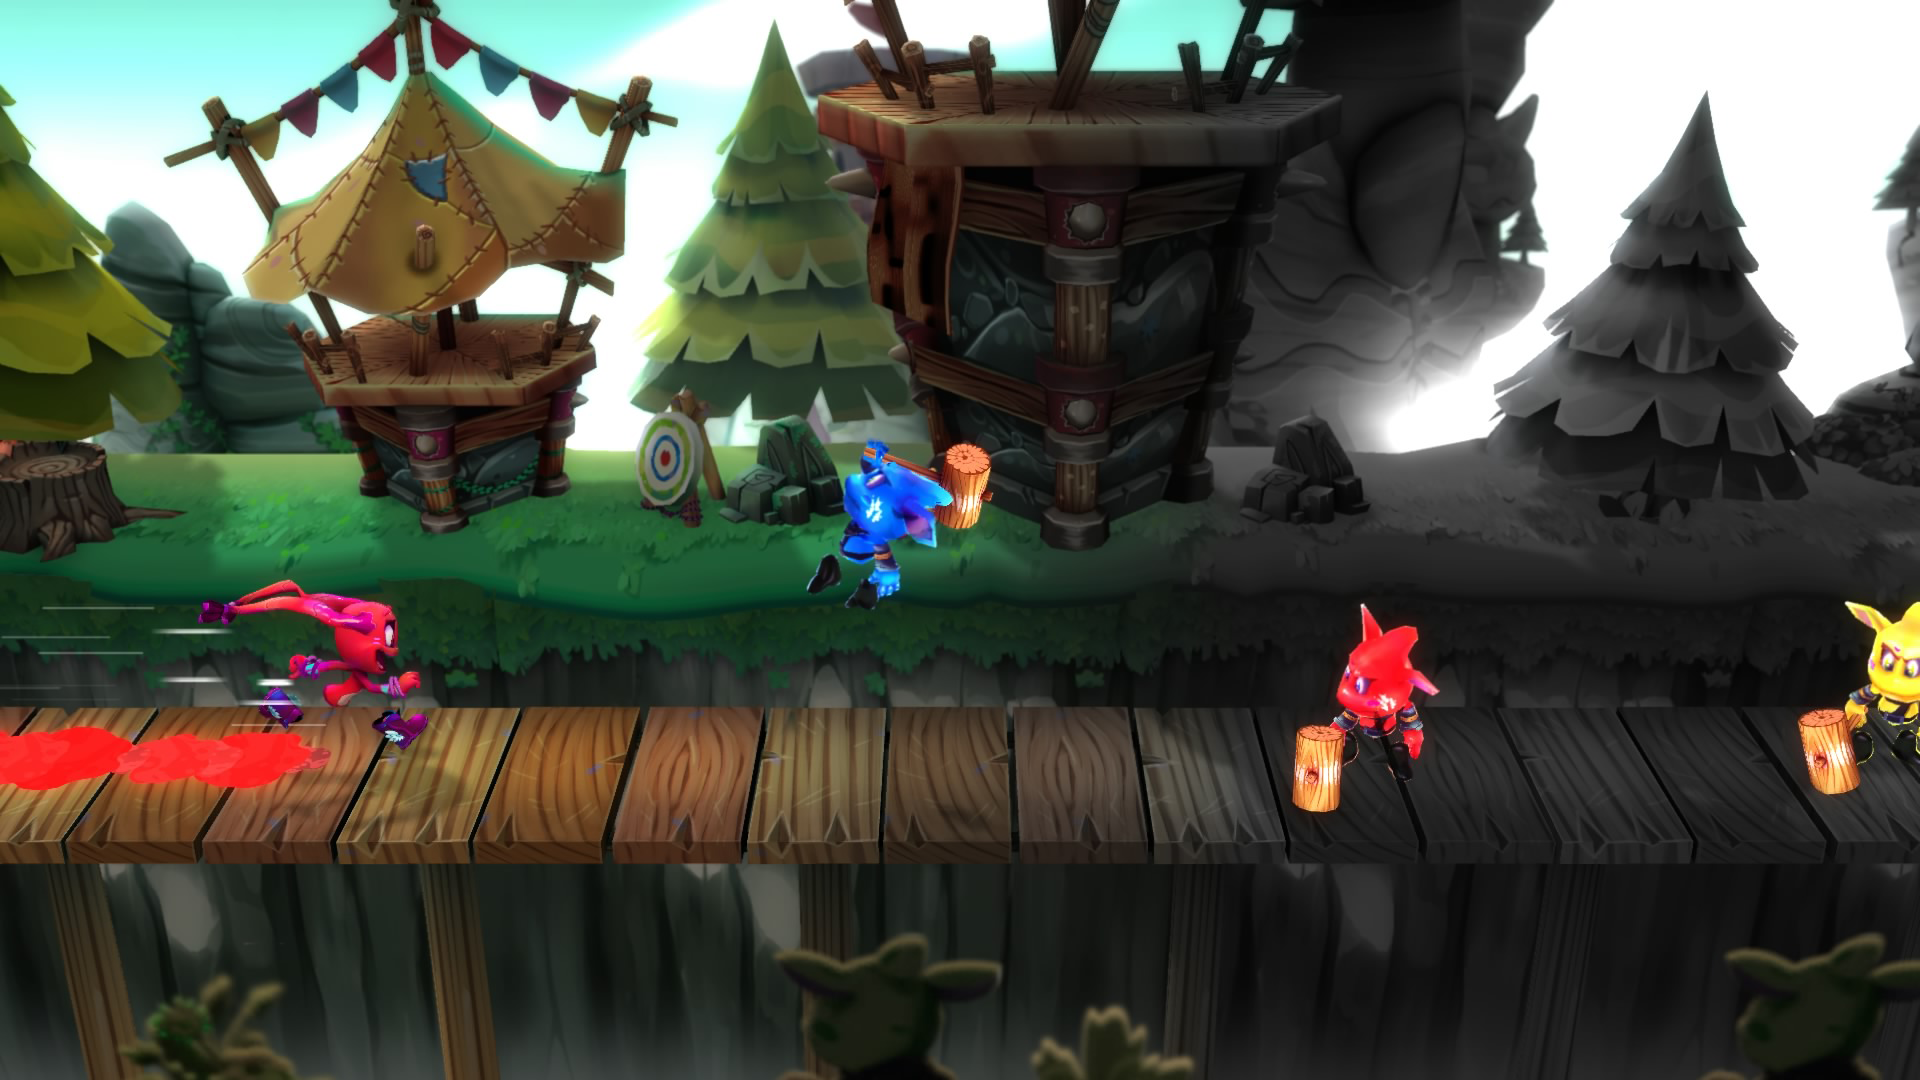 GDC 2015: Hands on With Color Guardians